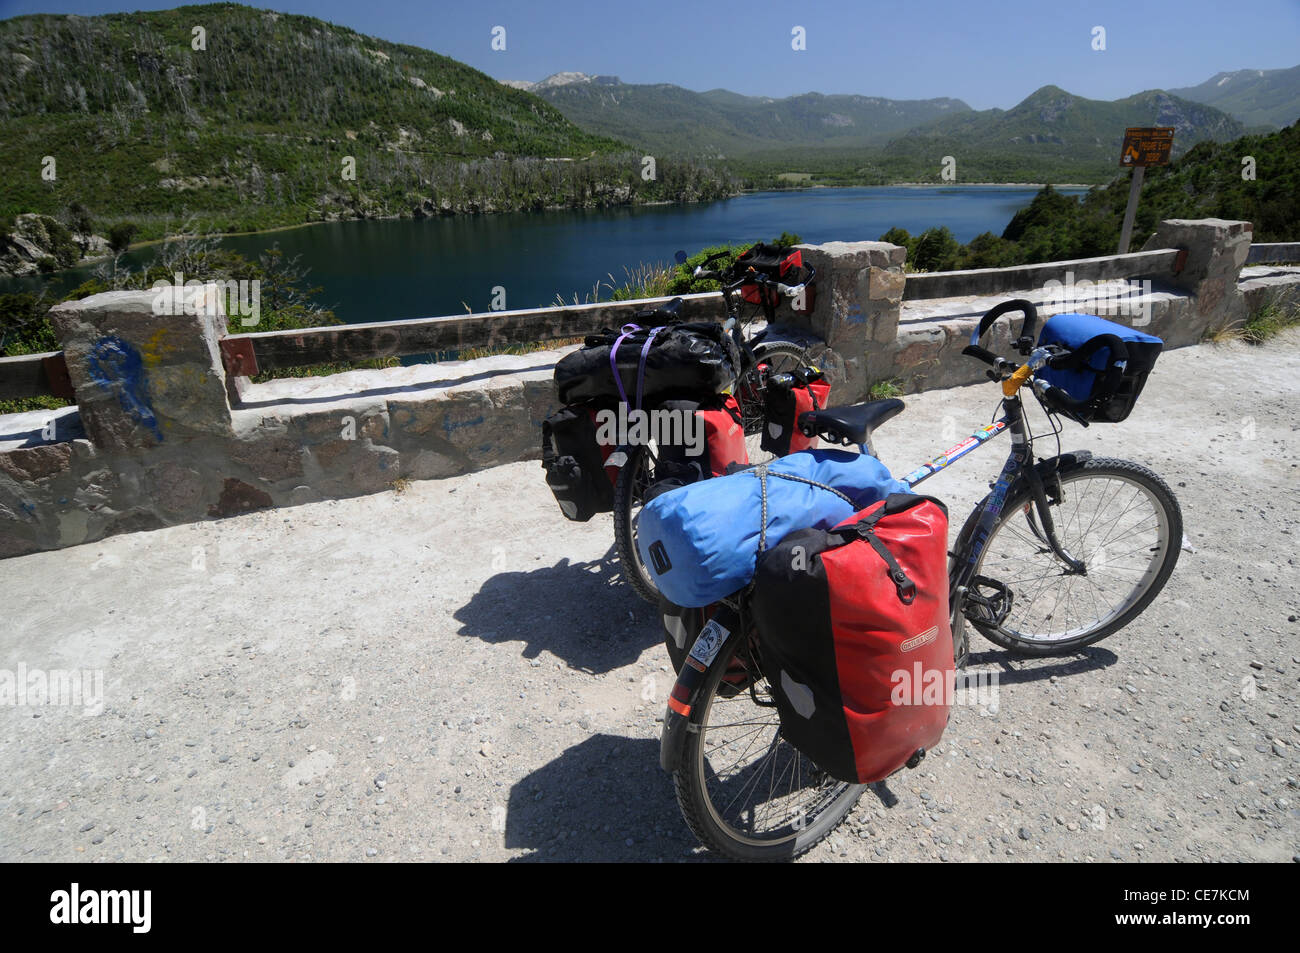 Touring bicycles with panniers parked overlooking Lago Machonico, Seven Lakes Scenic Route, Argentina - Stock Image